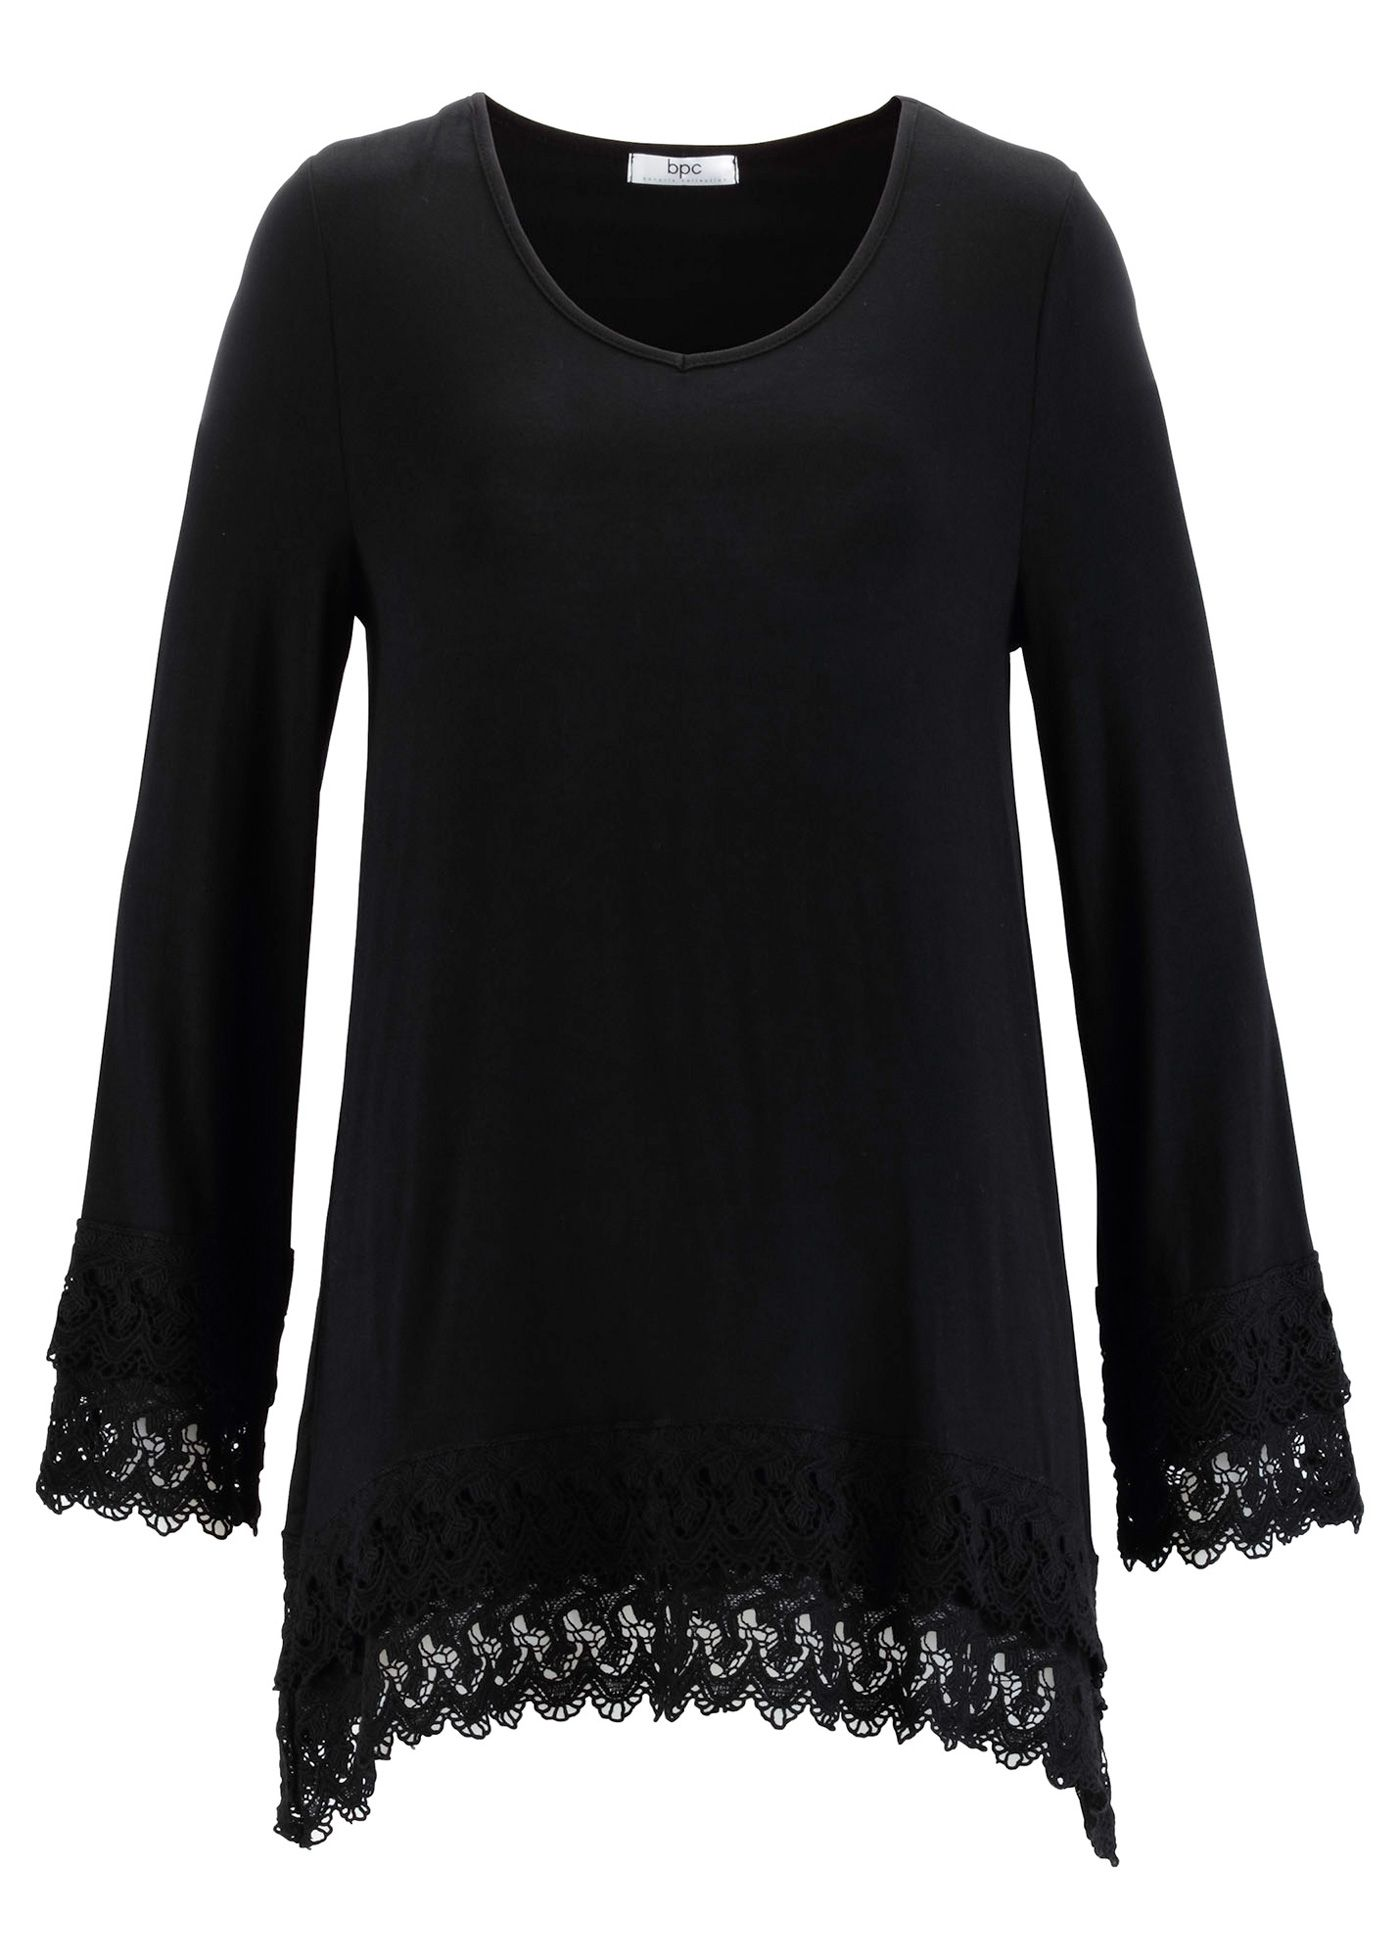 black tunic shirt with lace <3